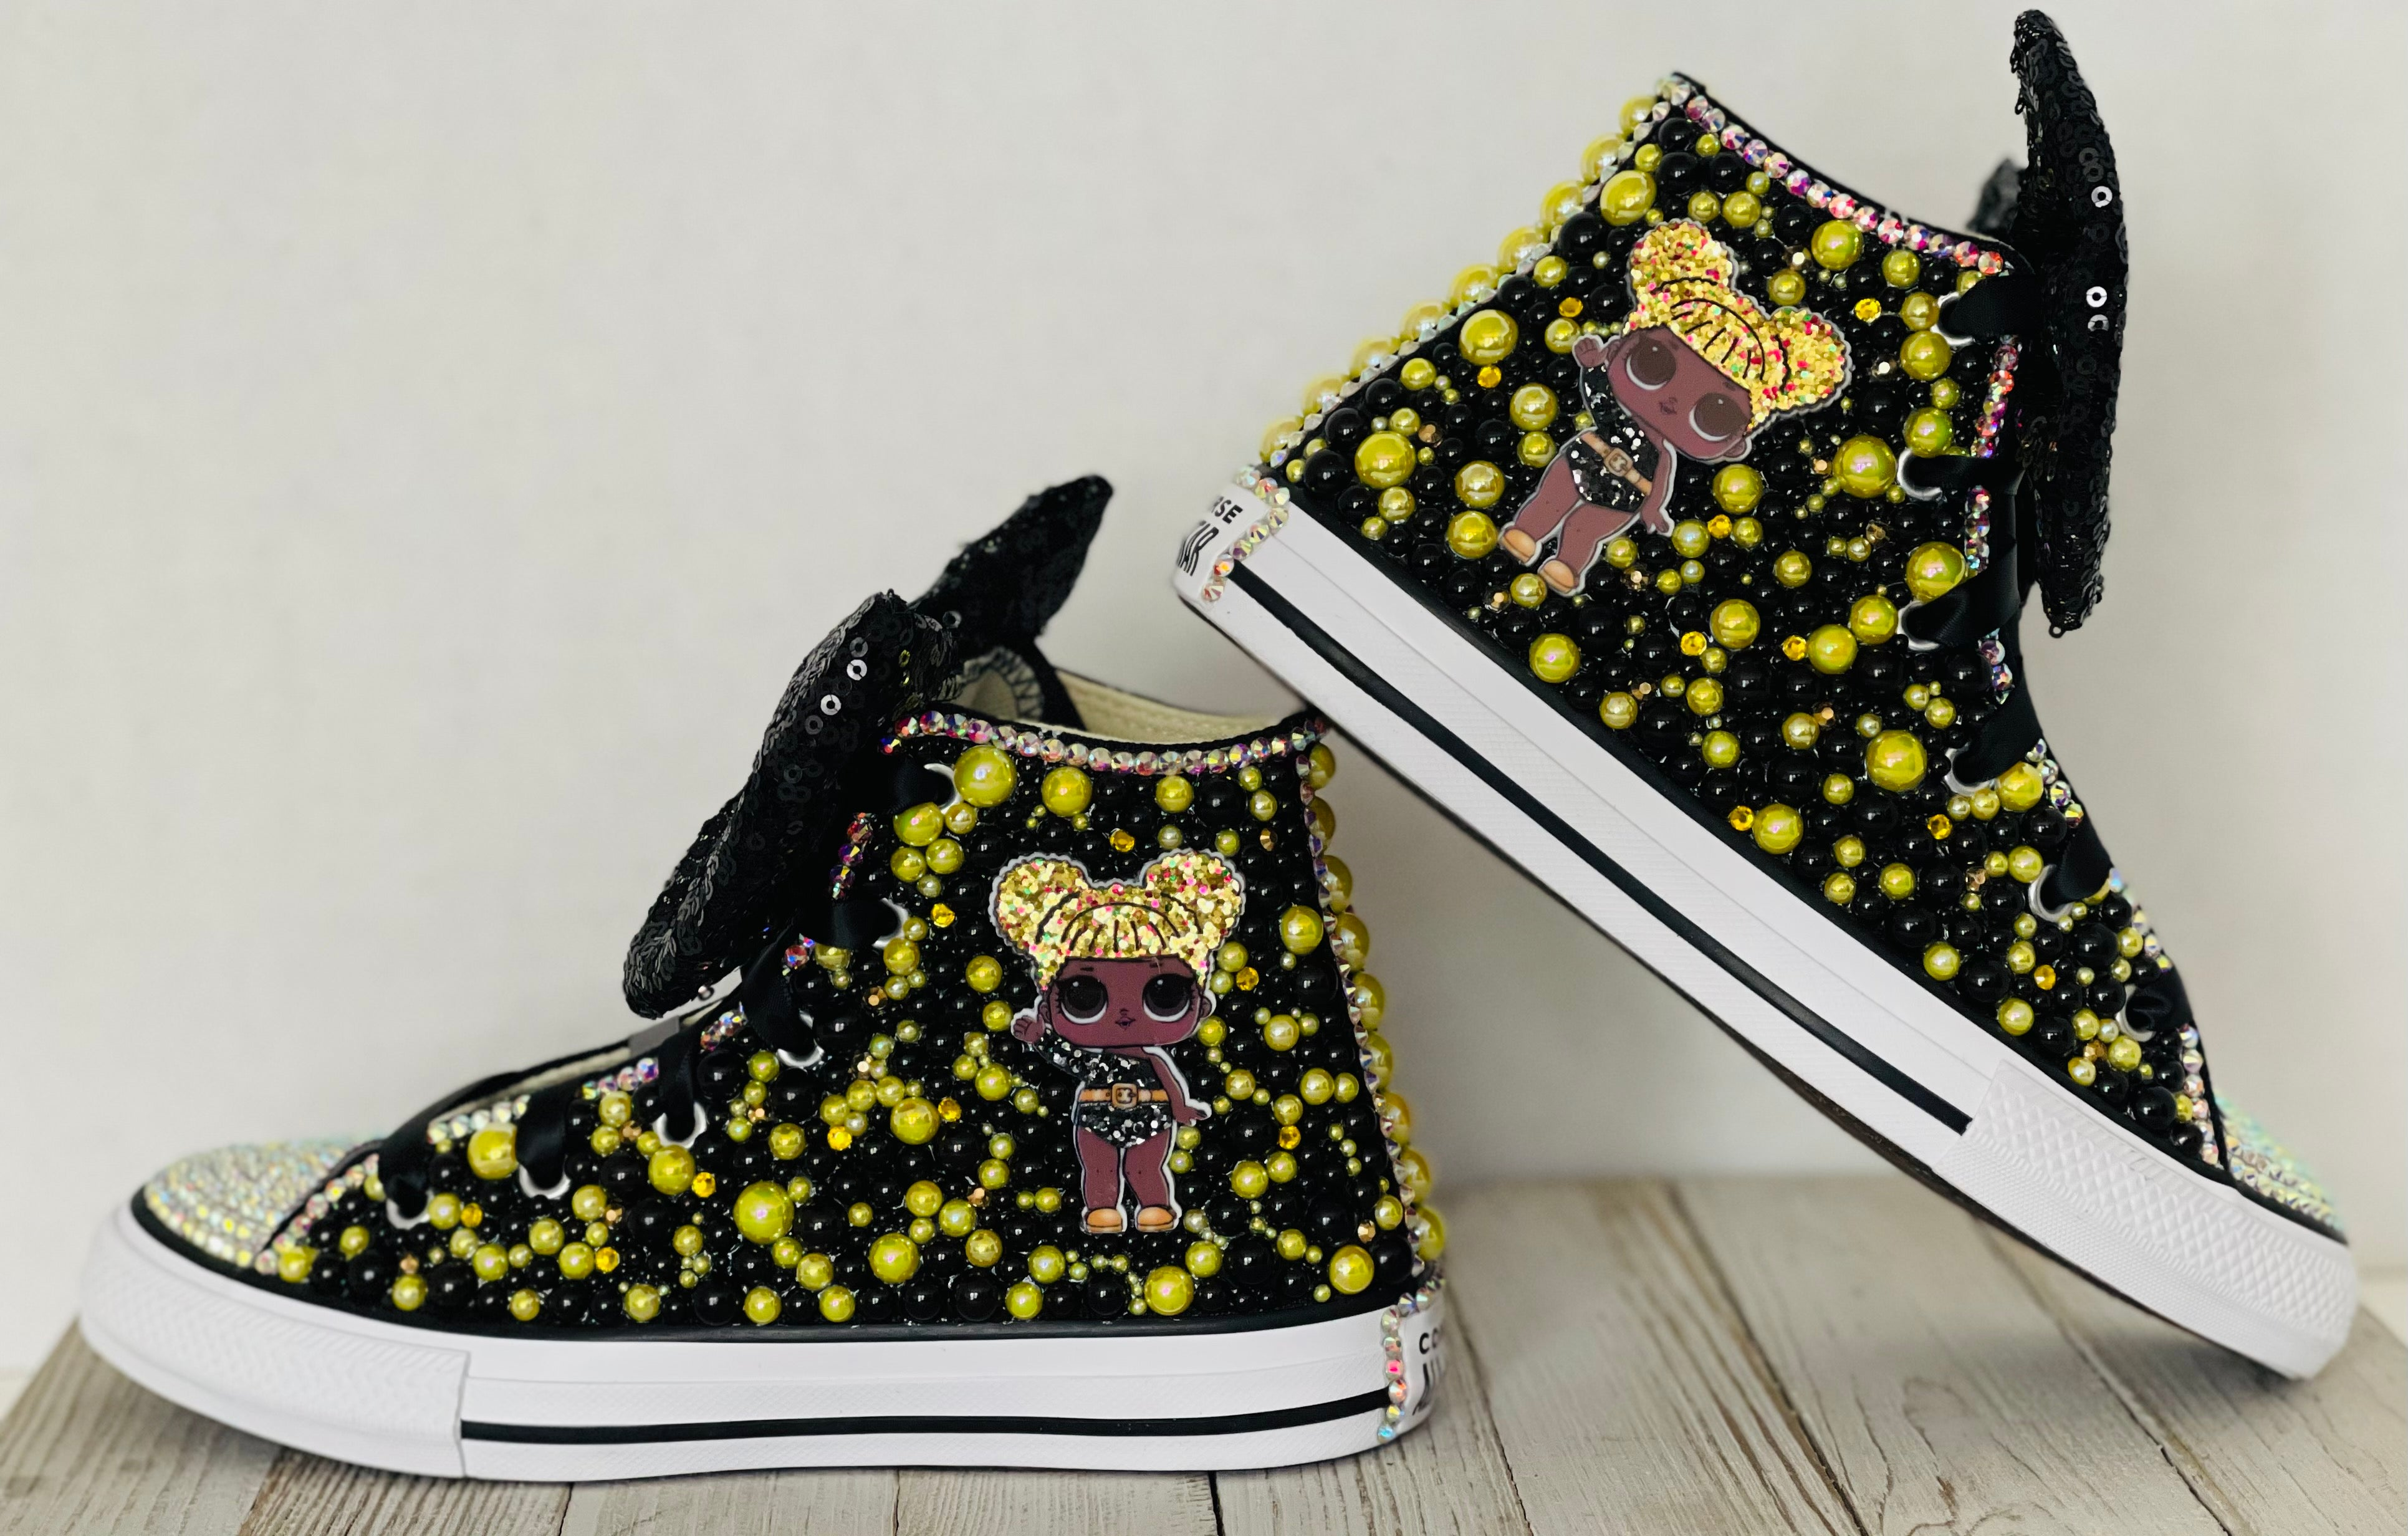 LOL Surprise Doll Queen Bee Converse Sneakers, Little Kids Shoe Size 10-2